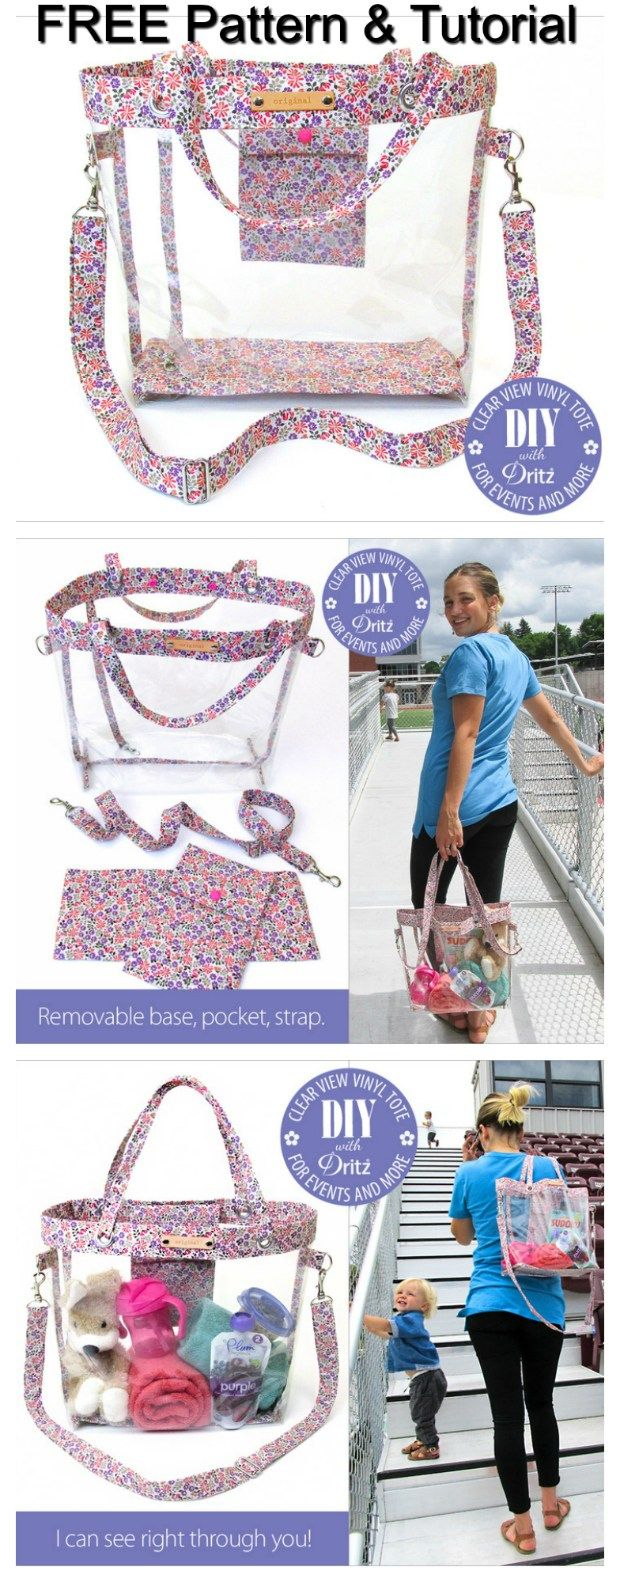 Clear Vinyl Tote Bag For Events Free Pattern Amp Tutorial